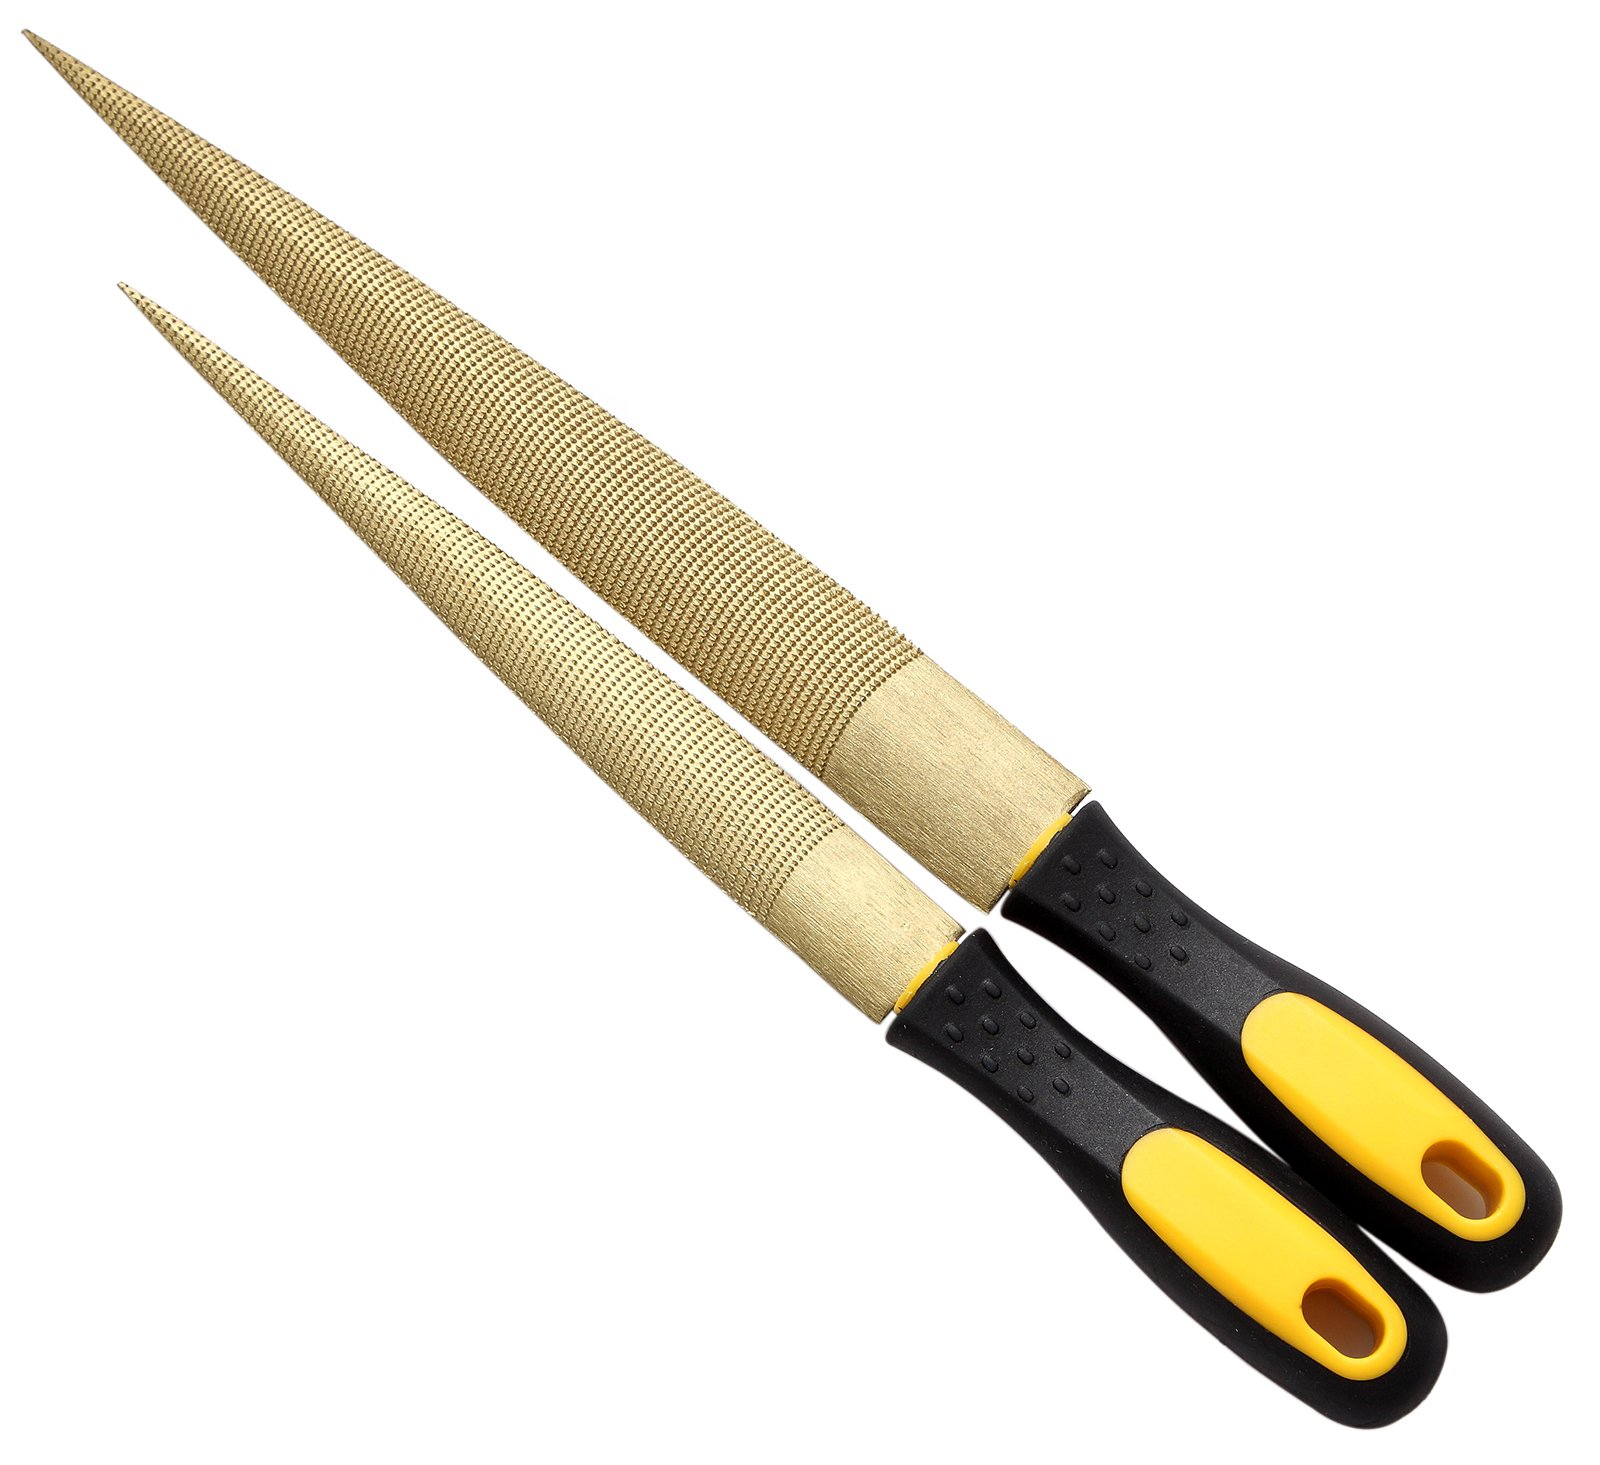 """NKTM 8"""" and 10"""" Golden Tapered Wood Rasp Bastard File with Rubber Handle in Gift Bag for Carving 2 Pack"""